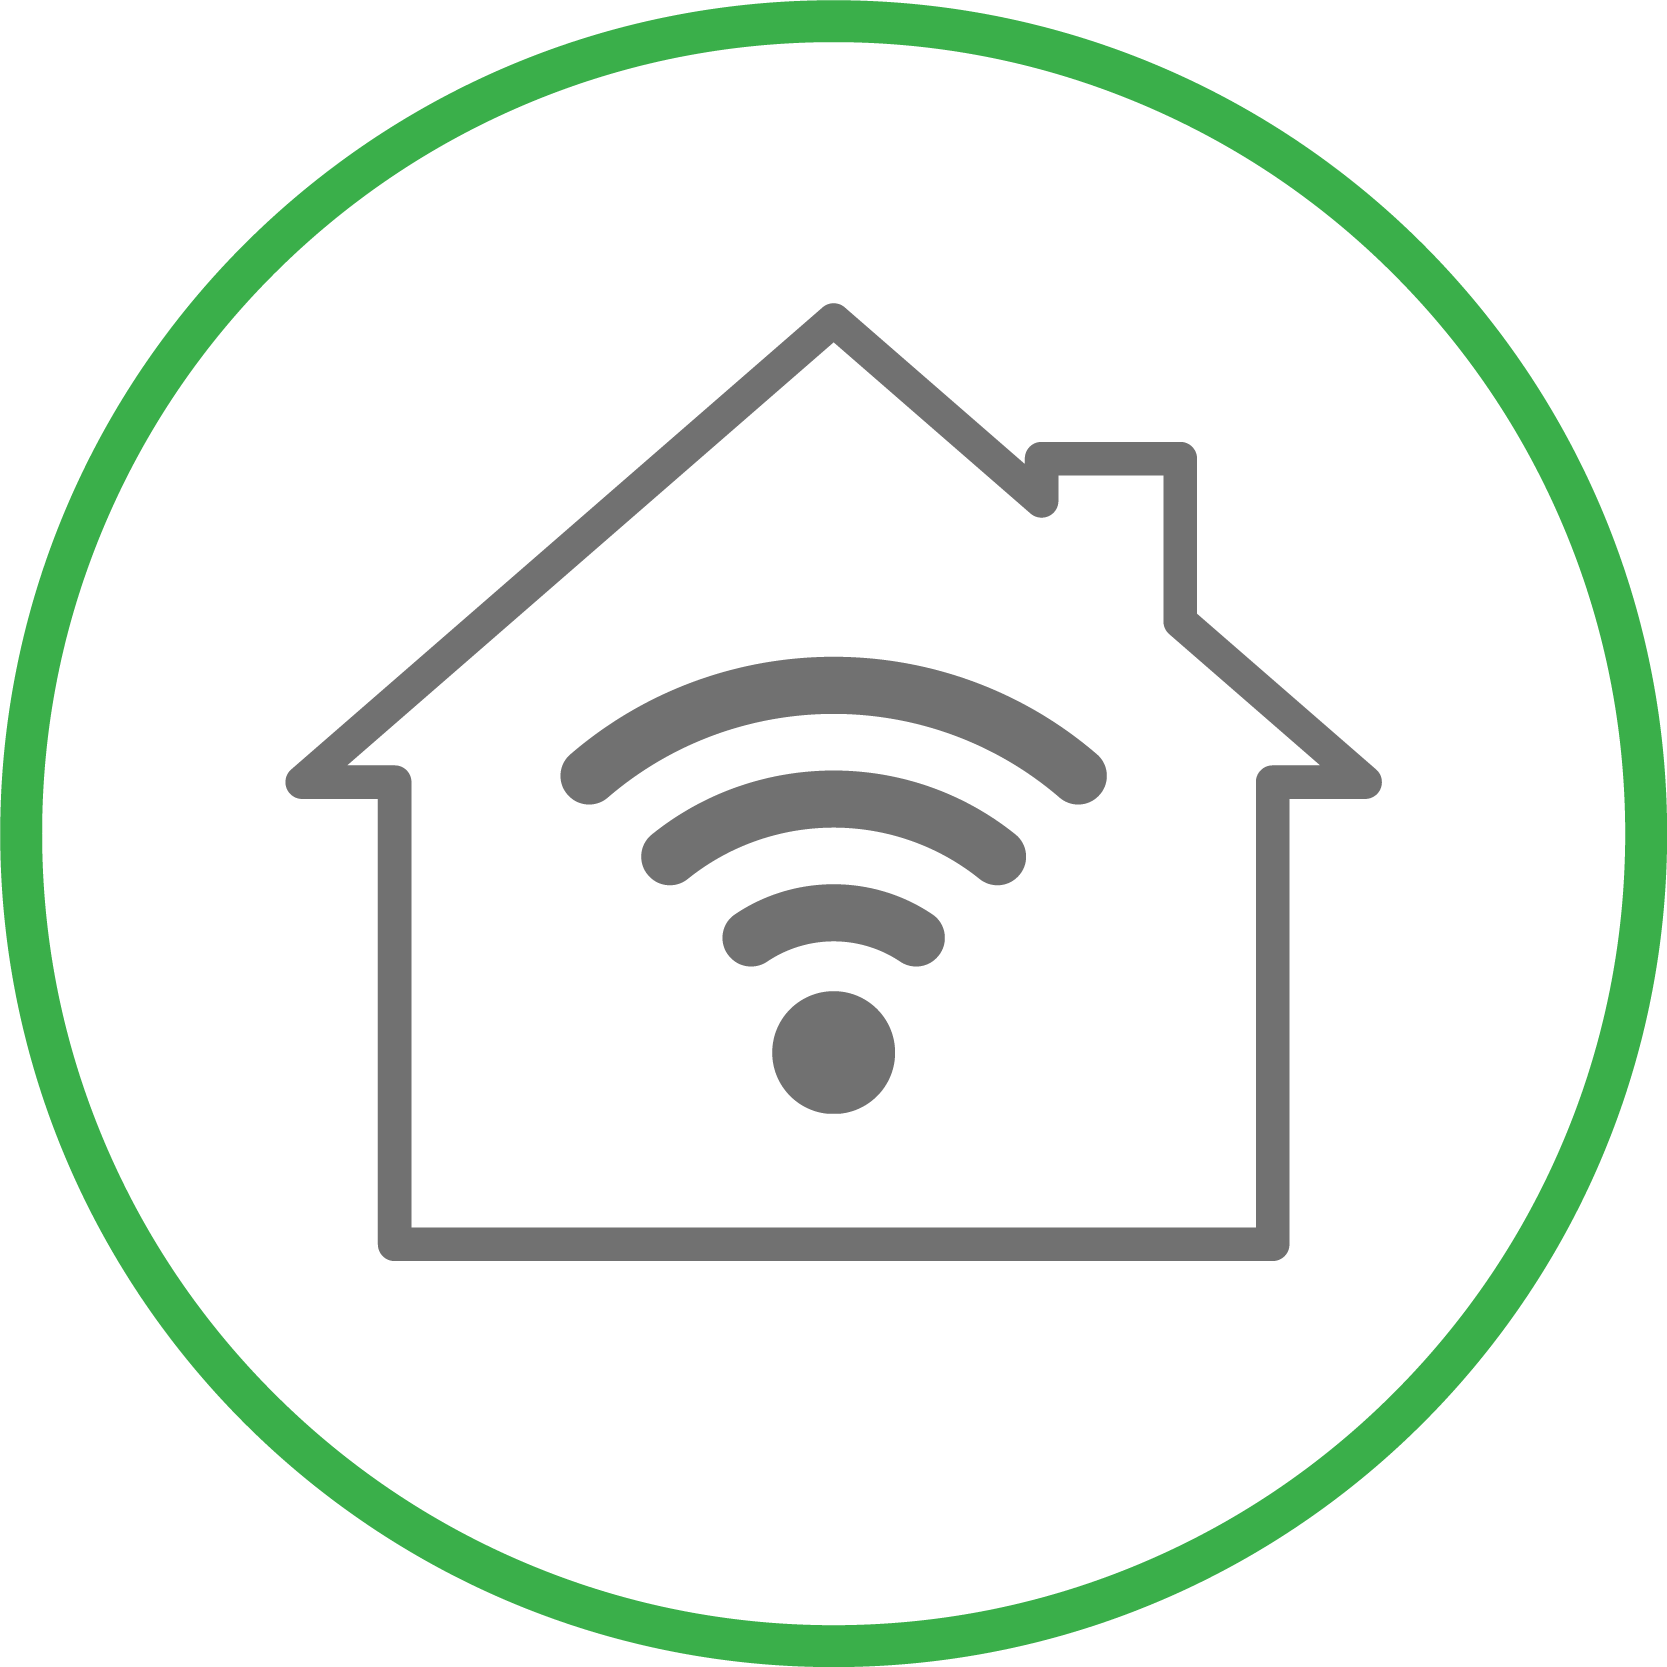 Icon Image | Home Area Network